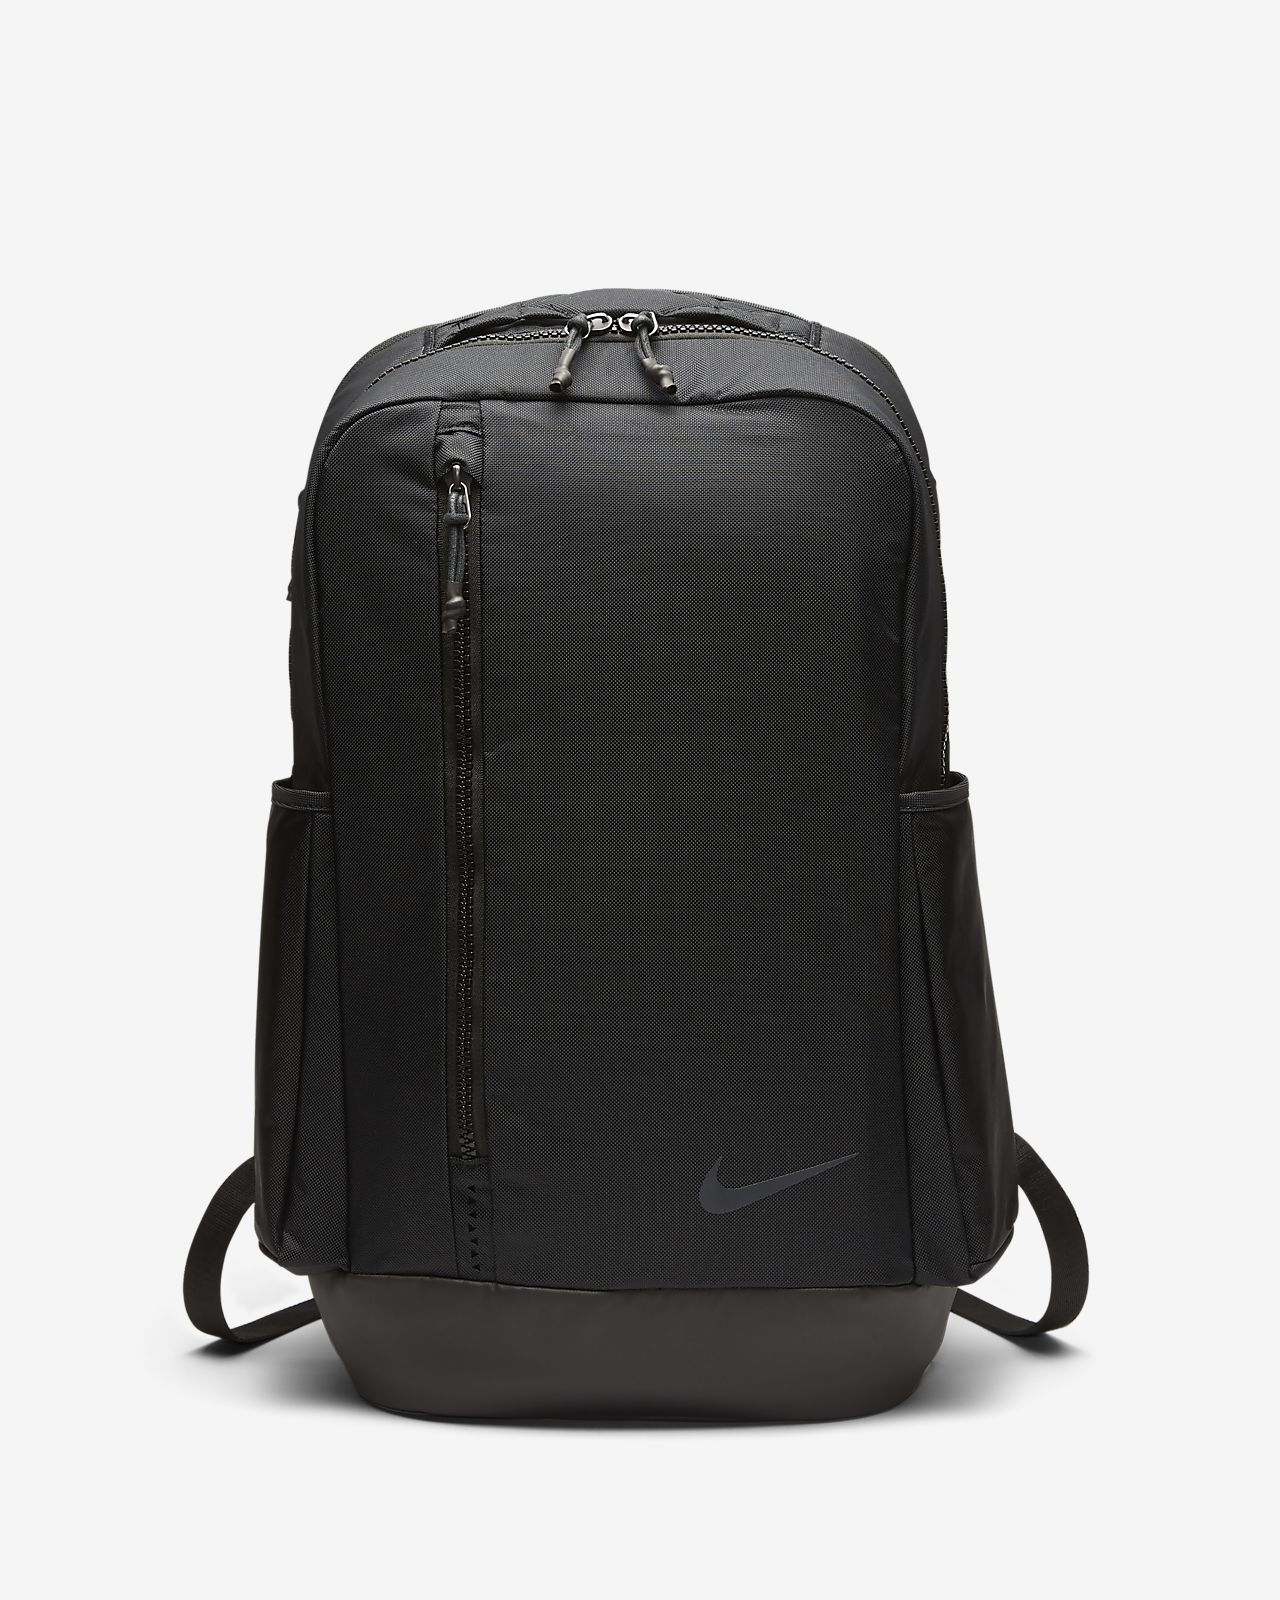 Nike vapor power training backpack jpg 1280x1600 Nike laptop cover 1065c3dc15f83